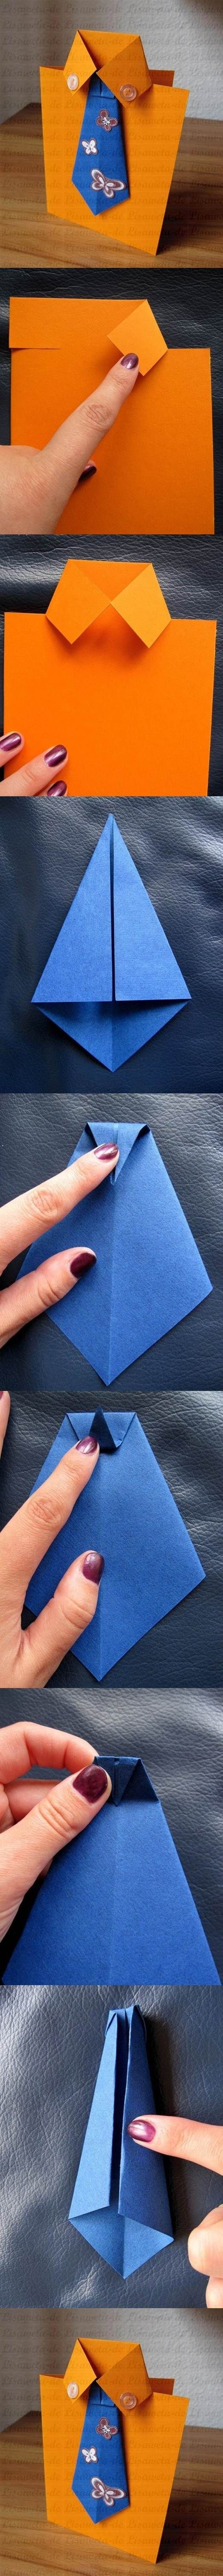 How to make a shirt and tie greeting card cool shirt diy tie diy